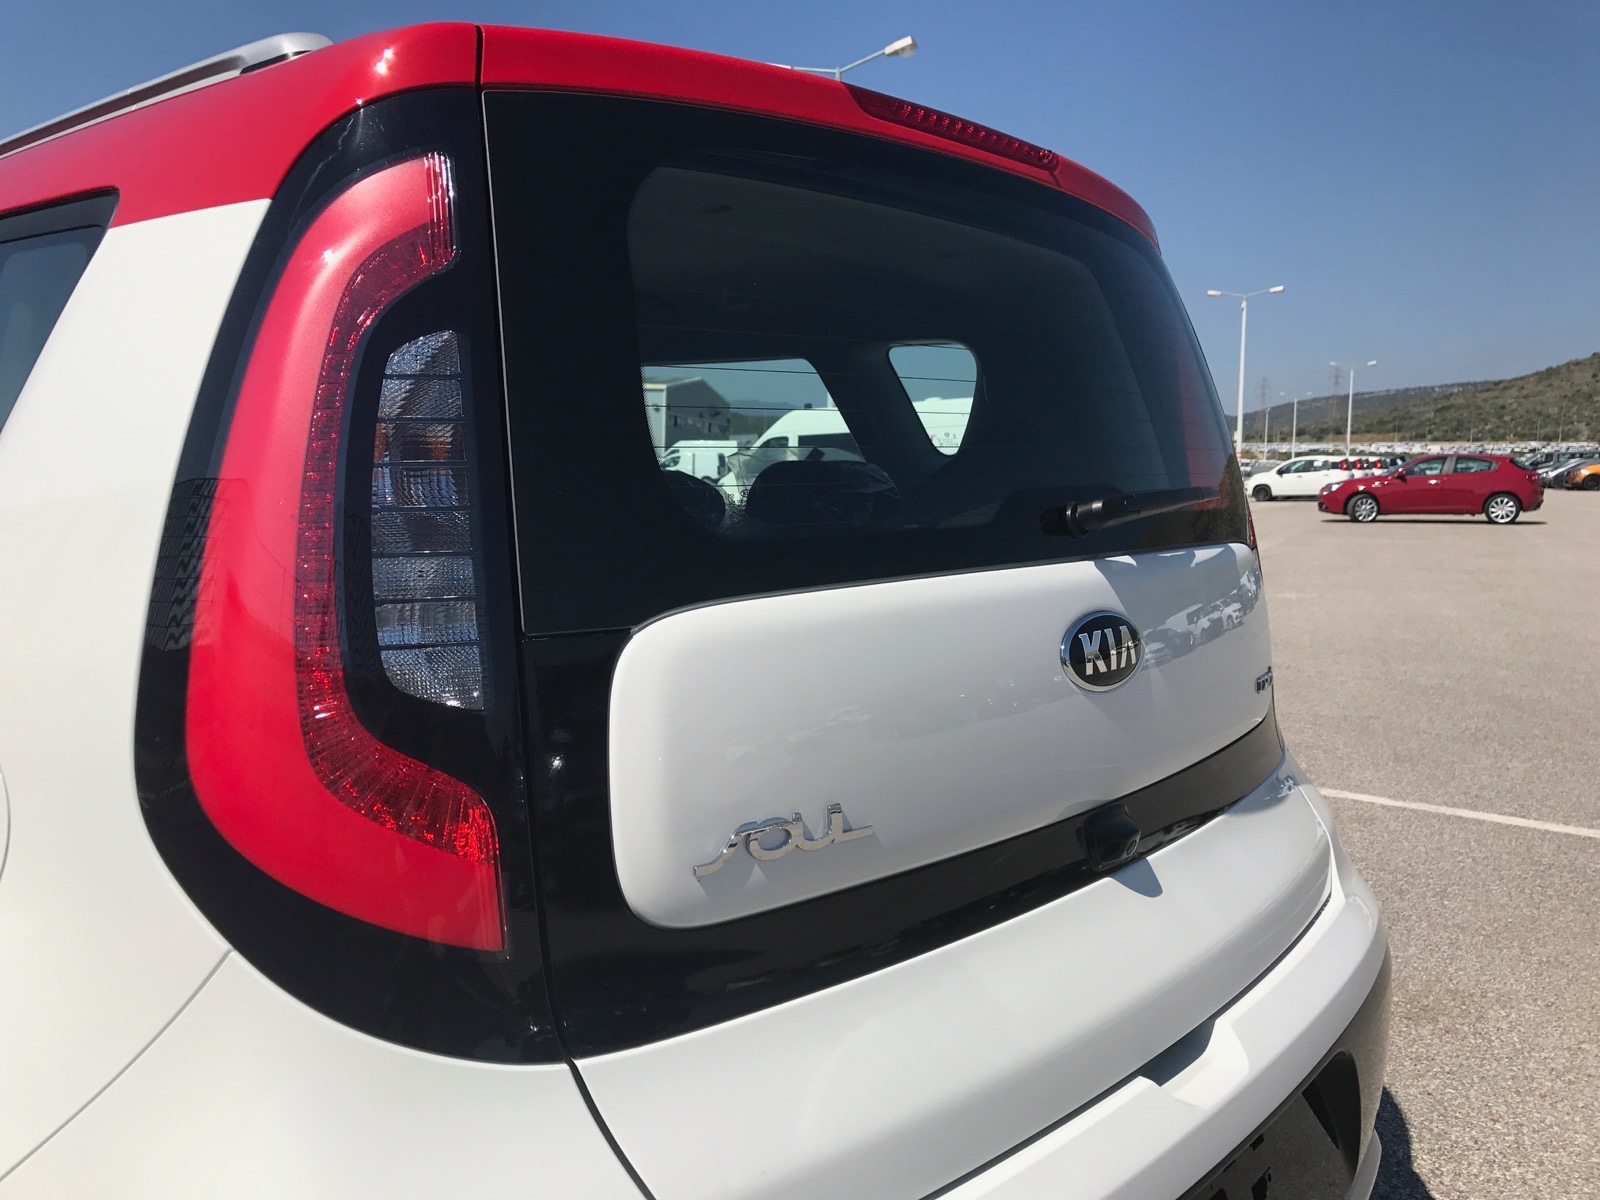 Kia_Soul_Greece_09